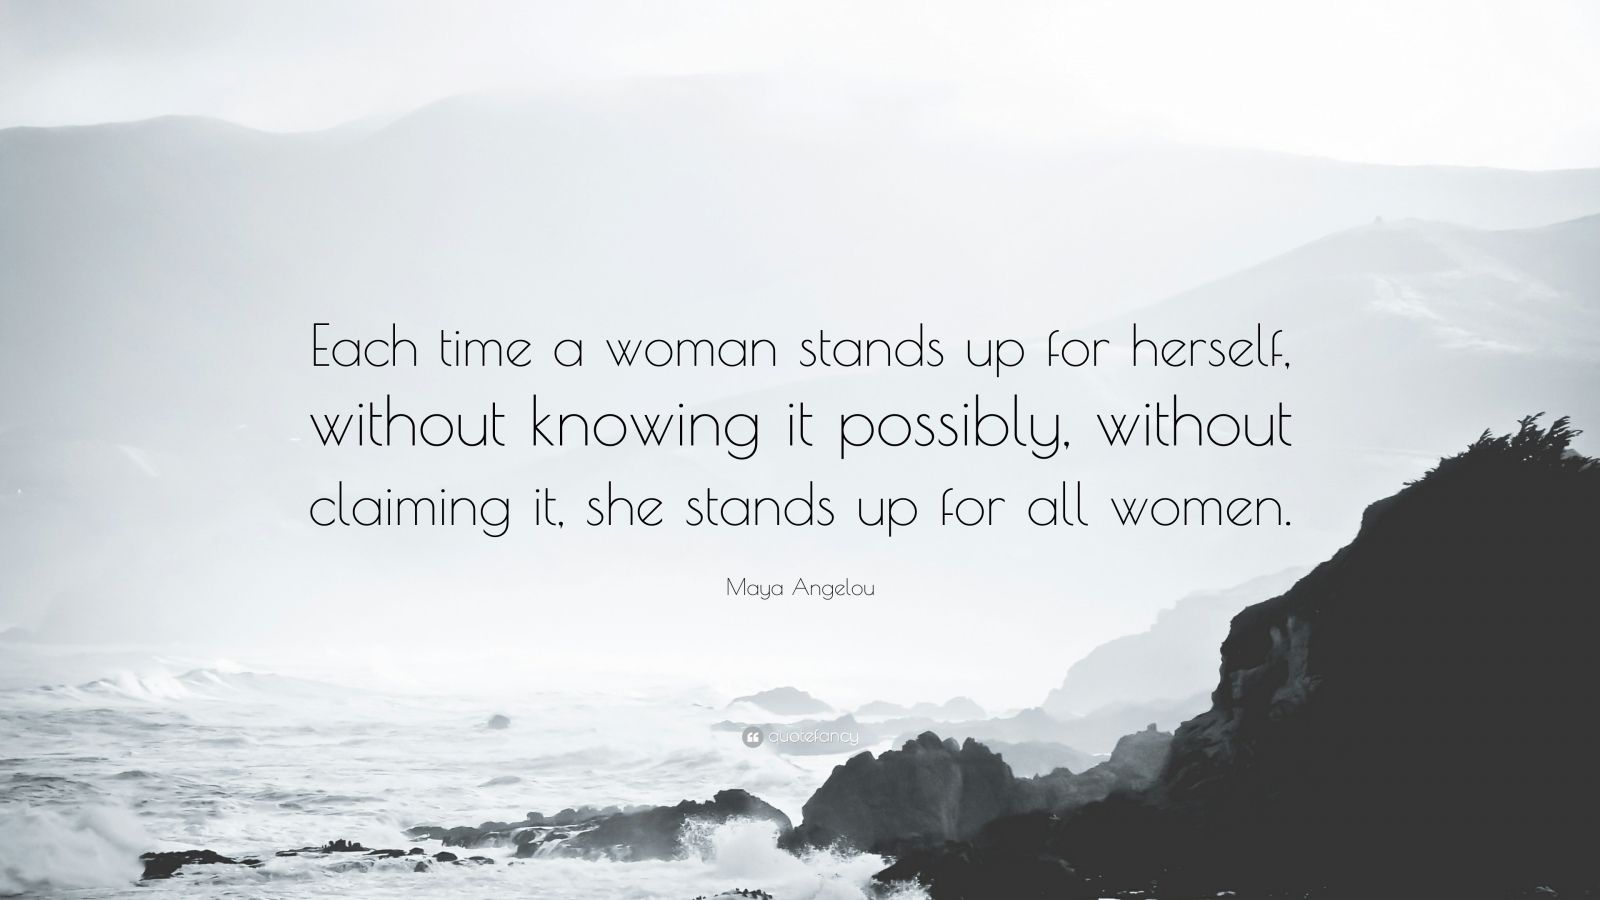 """Maya Angelou Quote: """"Each time a woman stands up for herself, without knowing it possibly, without claiming it, she stands up for all women."""""""